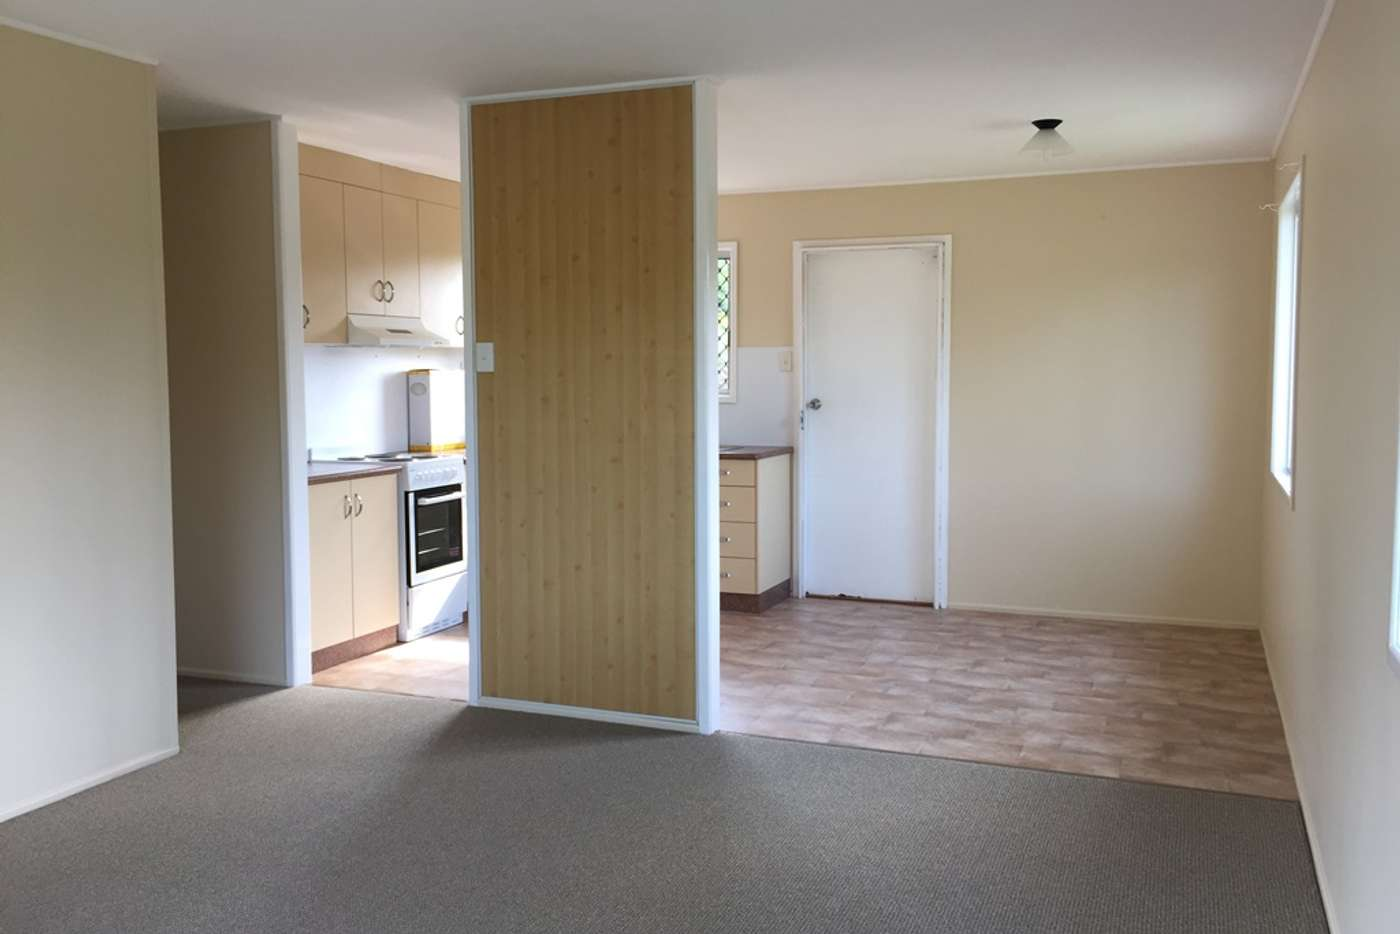 Sixth view of Homely house listing, 13 Tolcher Street, Mount Pleasant QLD 4740